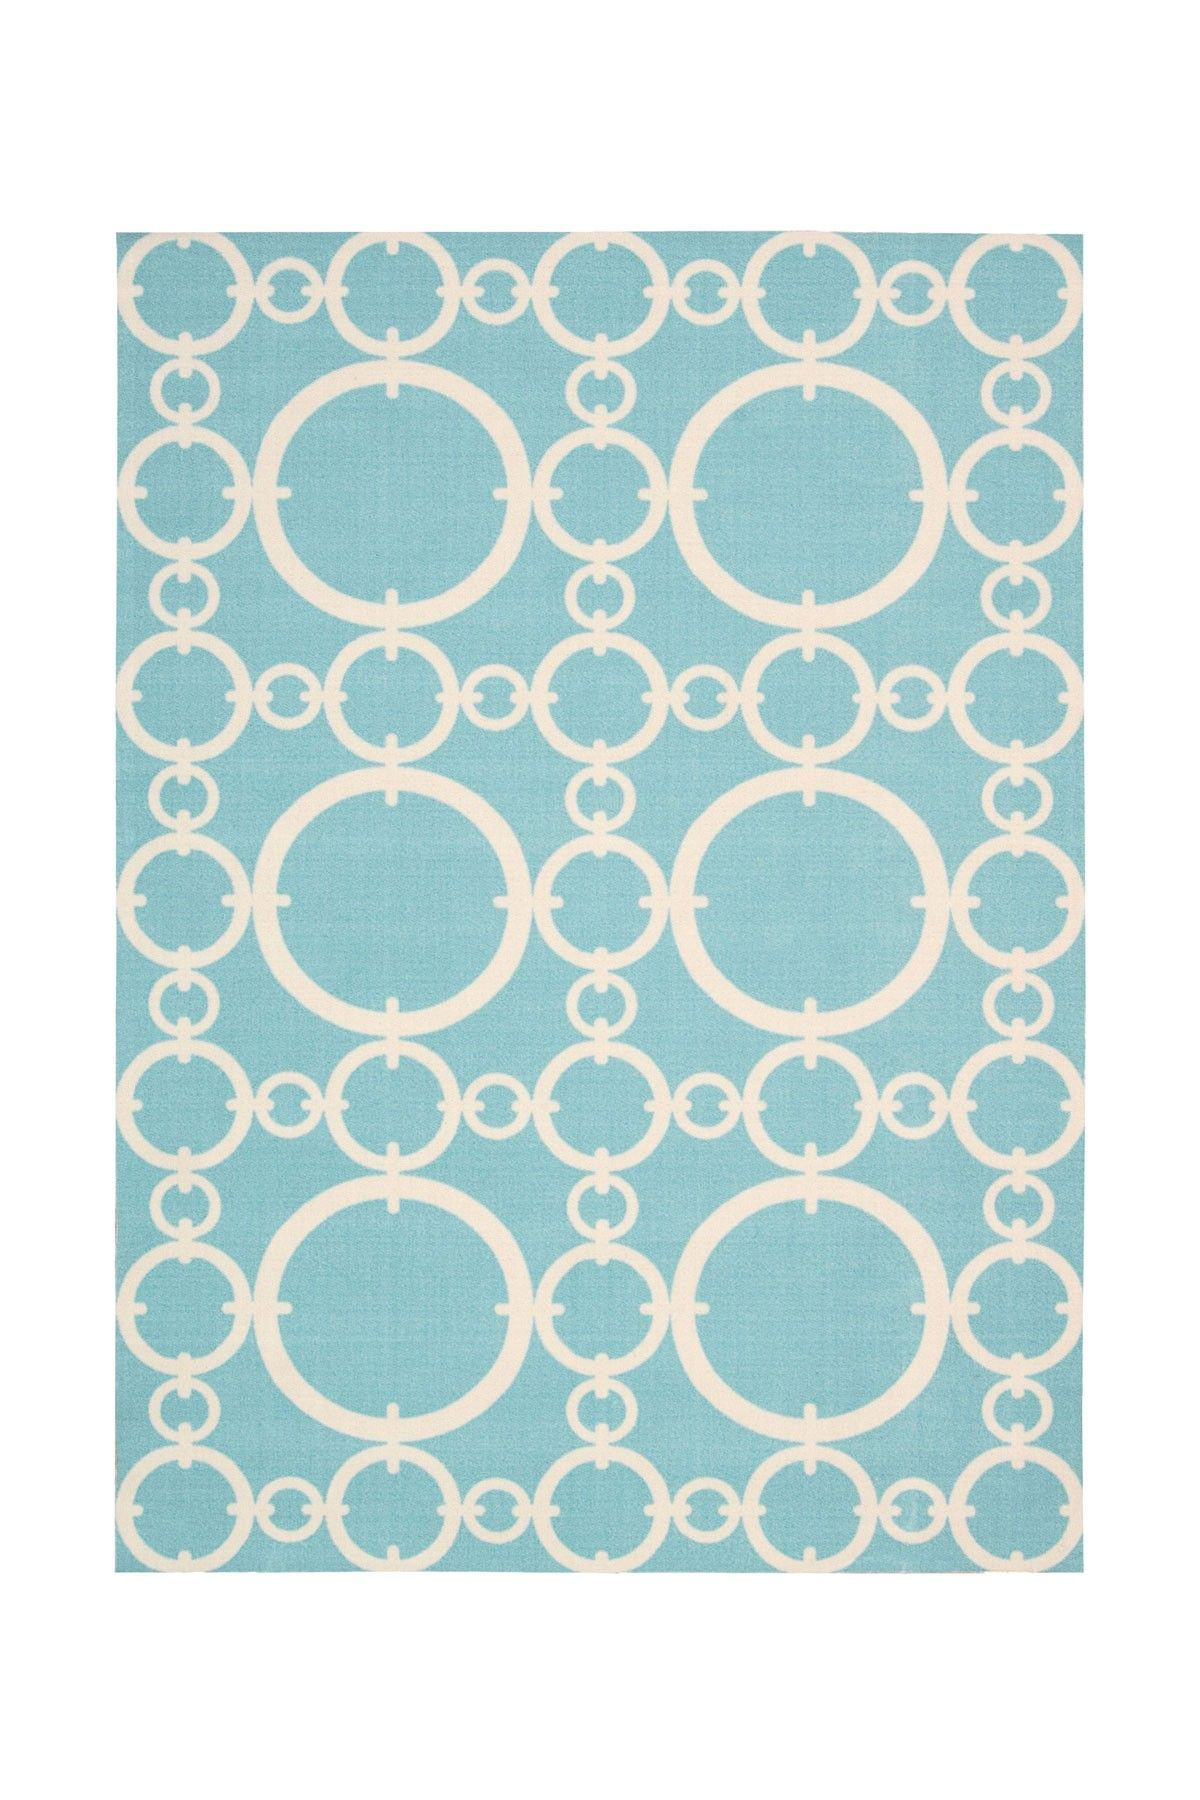 Waverly Timepiece Indooroutdoor Rug  Aquamarine Rughome #Rugs